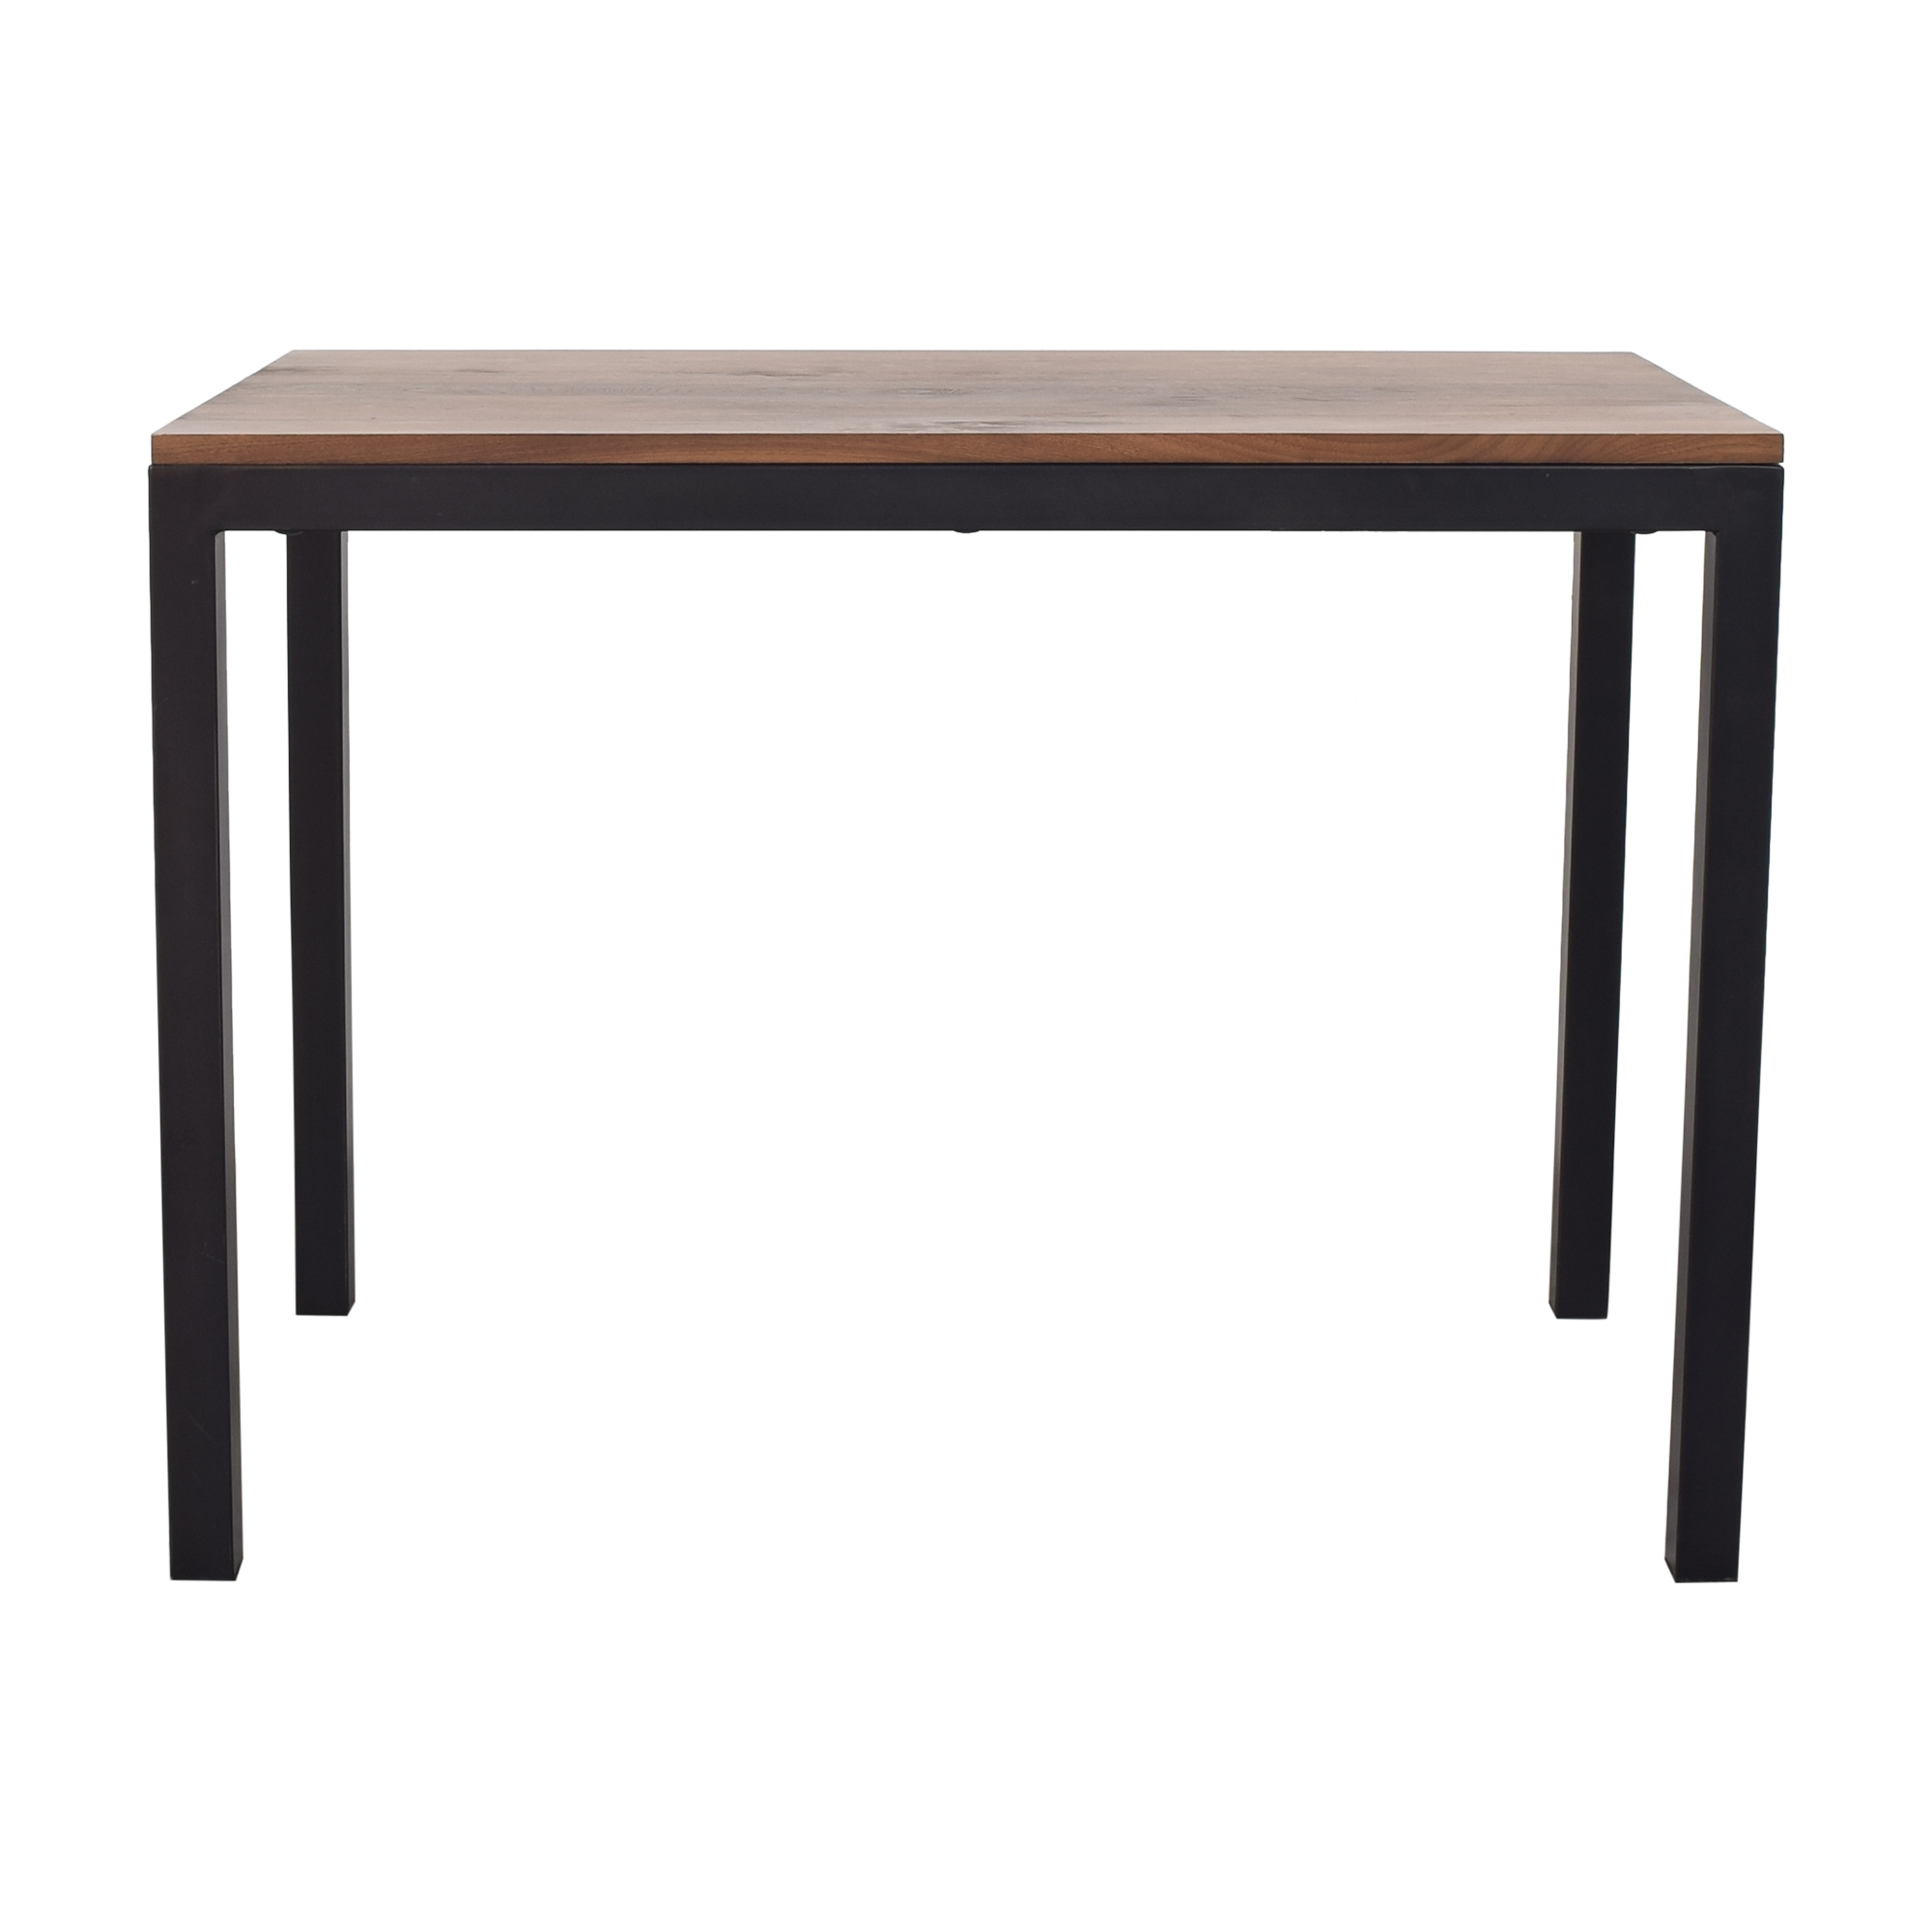 Crate & Barrel Crate & Barrel Custom Parsons Table nj